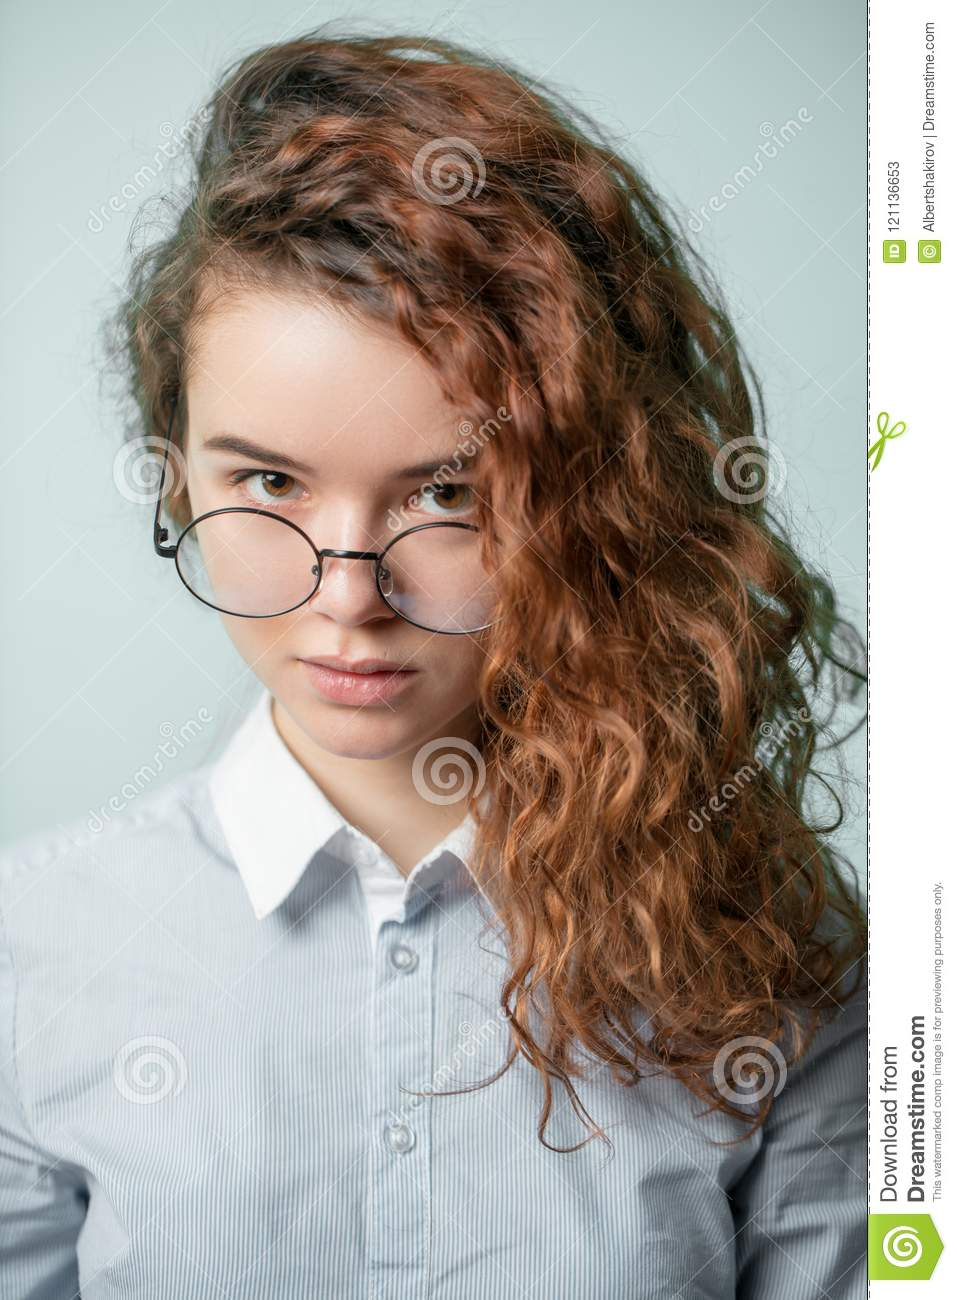 Close Up Portrait Of Serious Girl With Long Red Curly Hair Stock